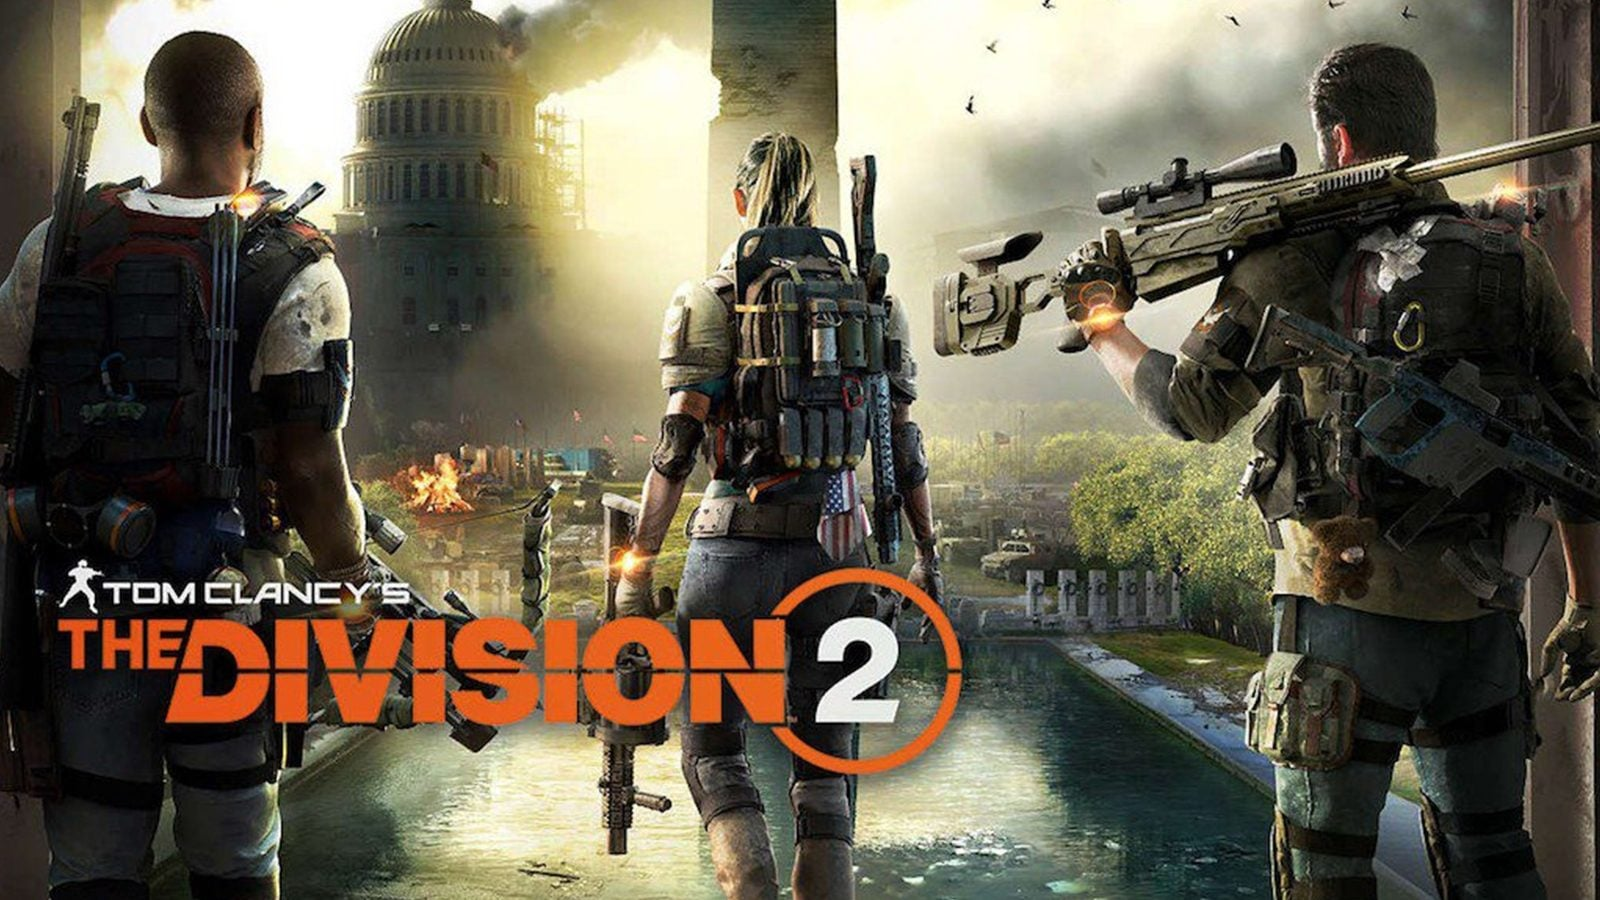 The Division 2 PC Version Free Download